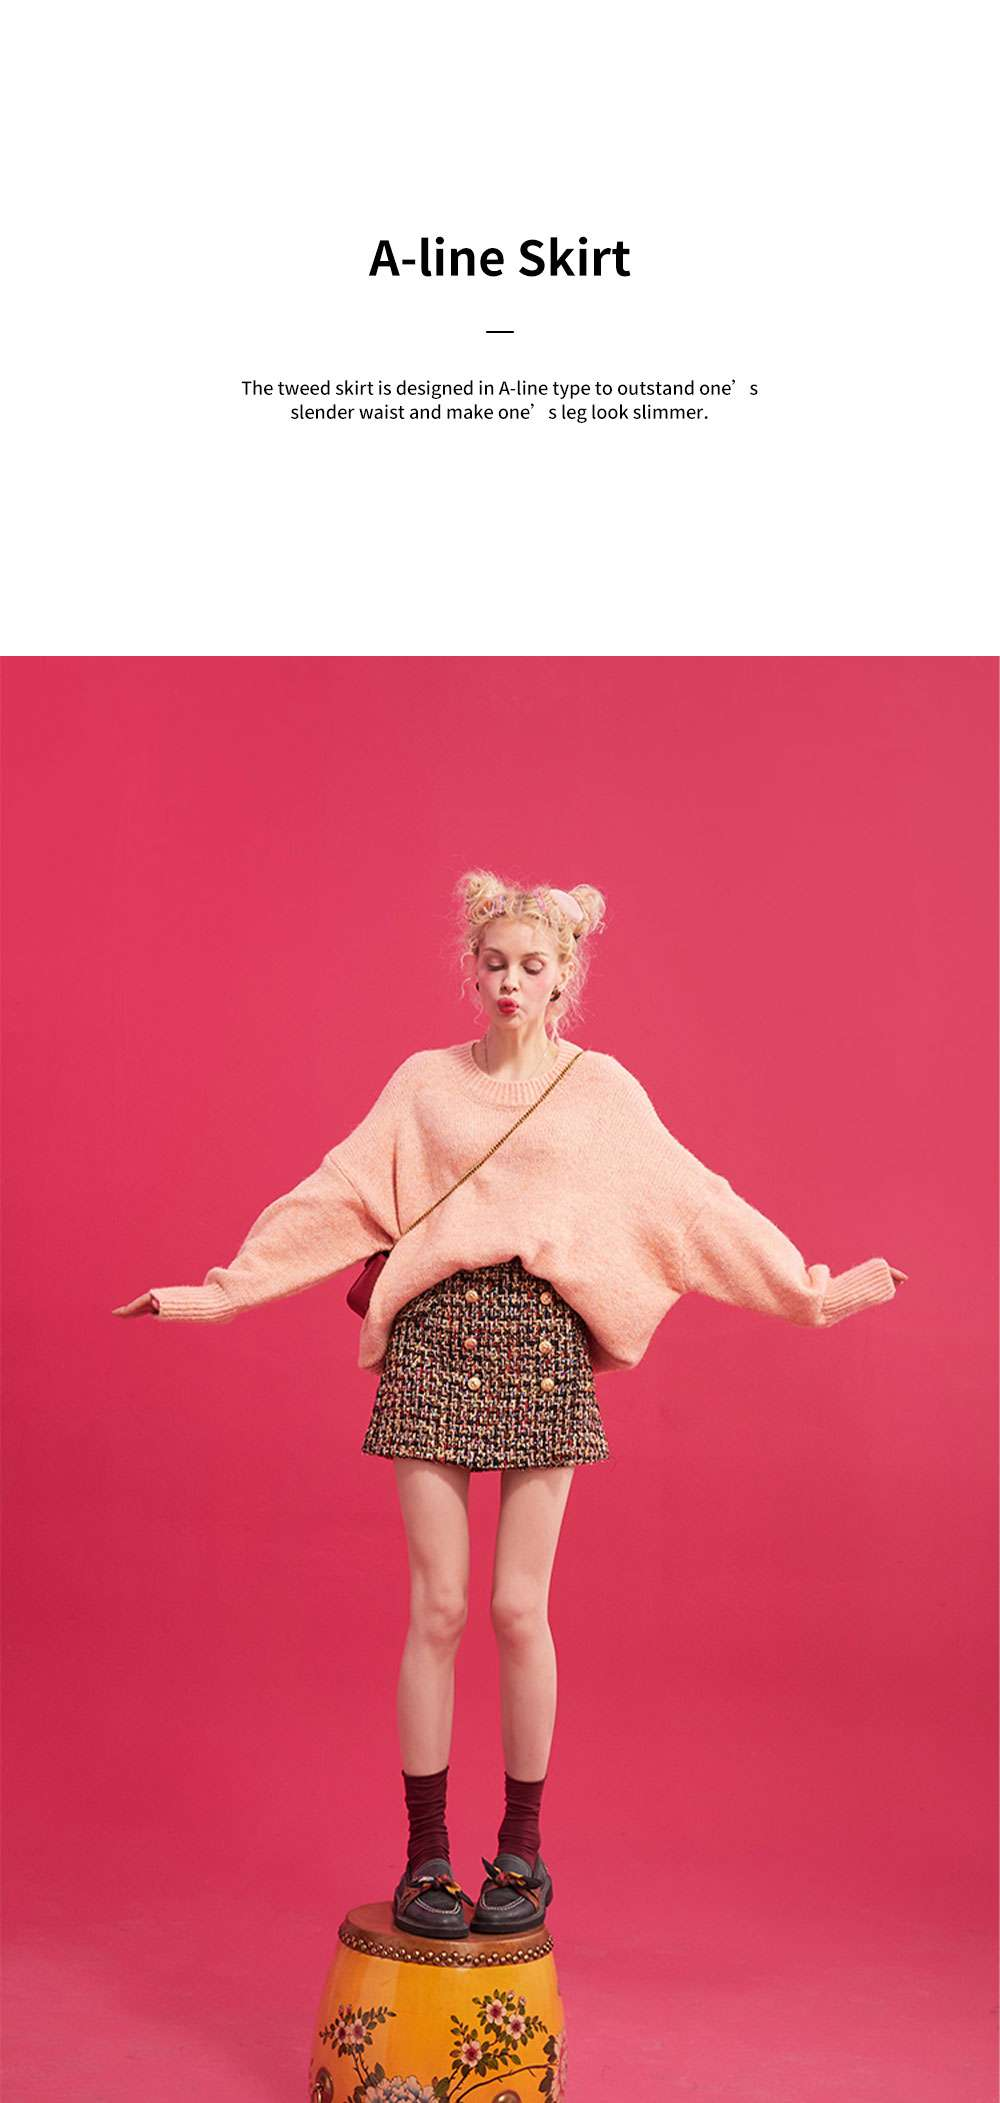 Autumn Winter 2019 New Style Tweed Skirt Chanel's Style Bust Skirt for Lady Wear Fashionable and Unique A-line Skirt 5